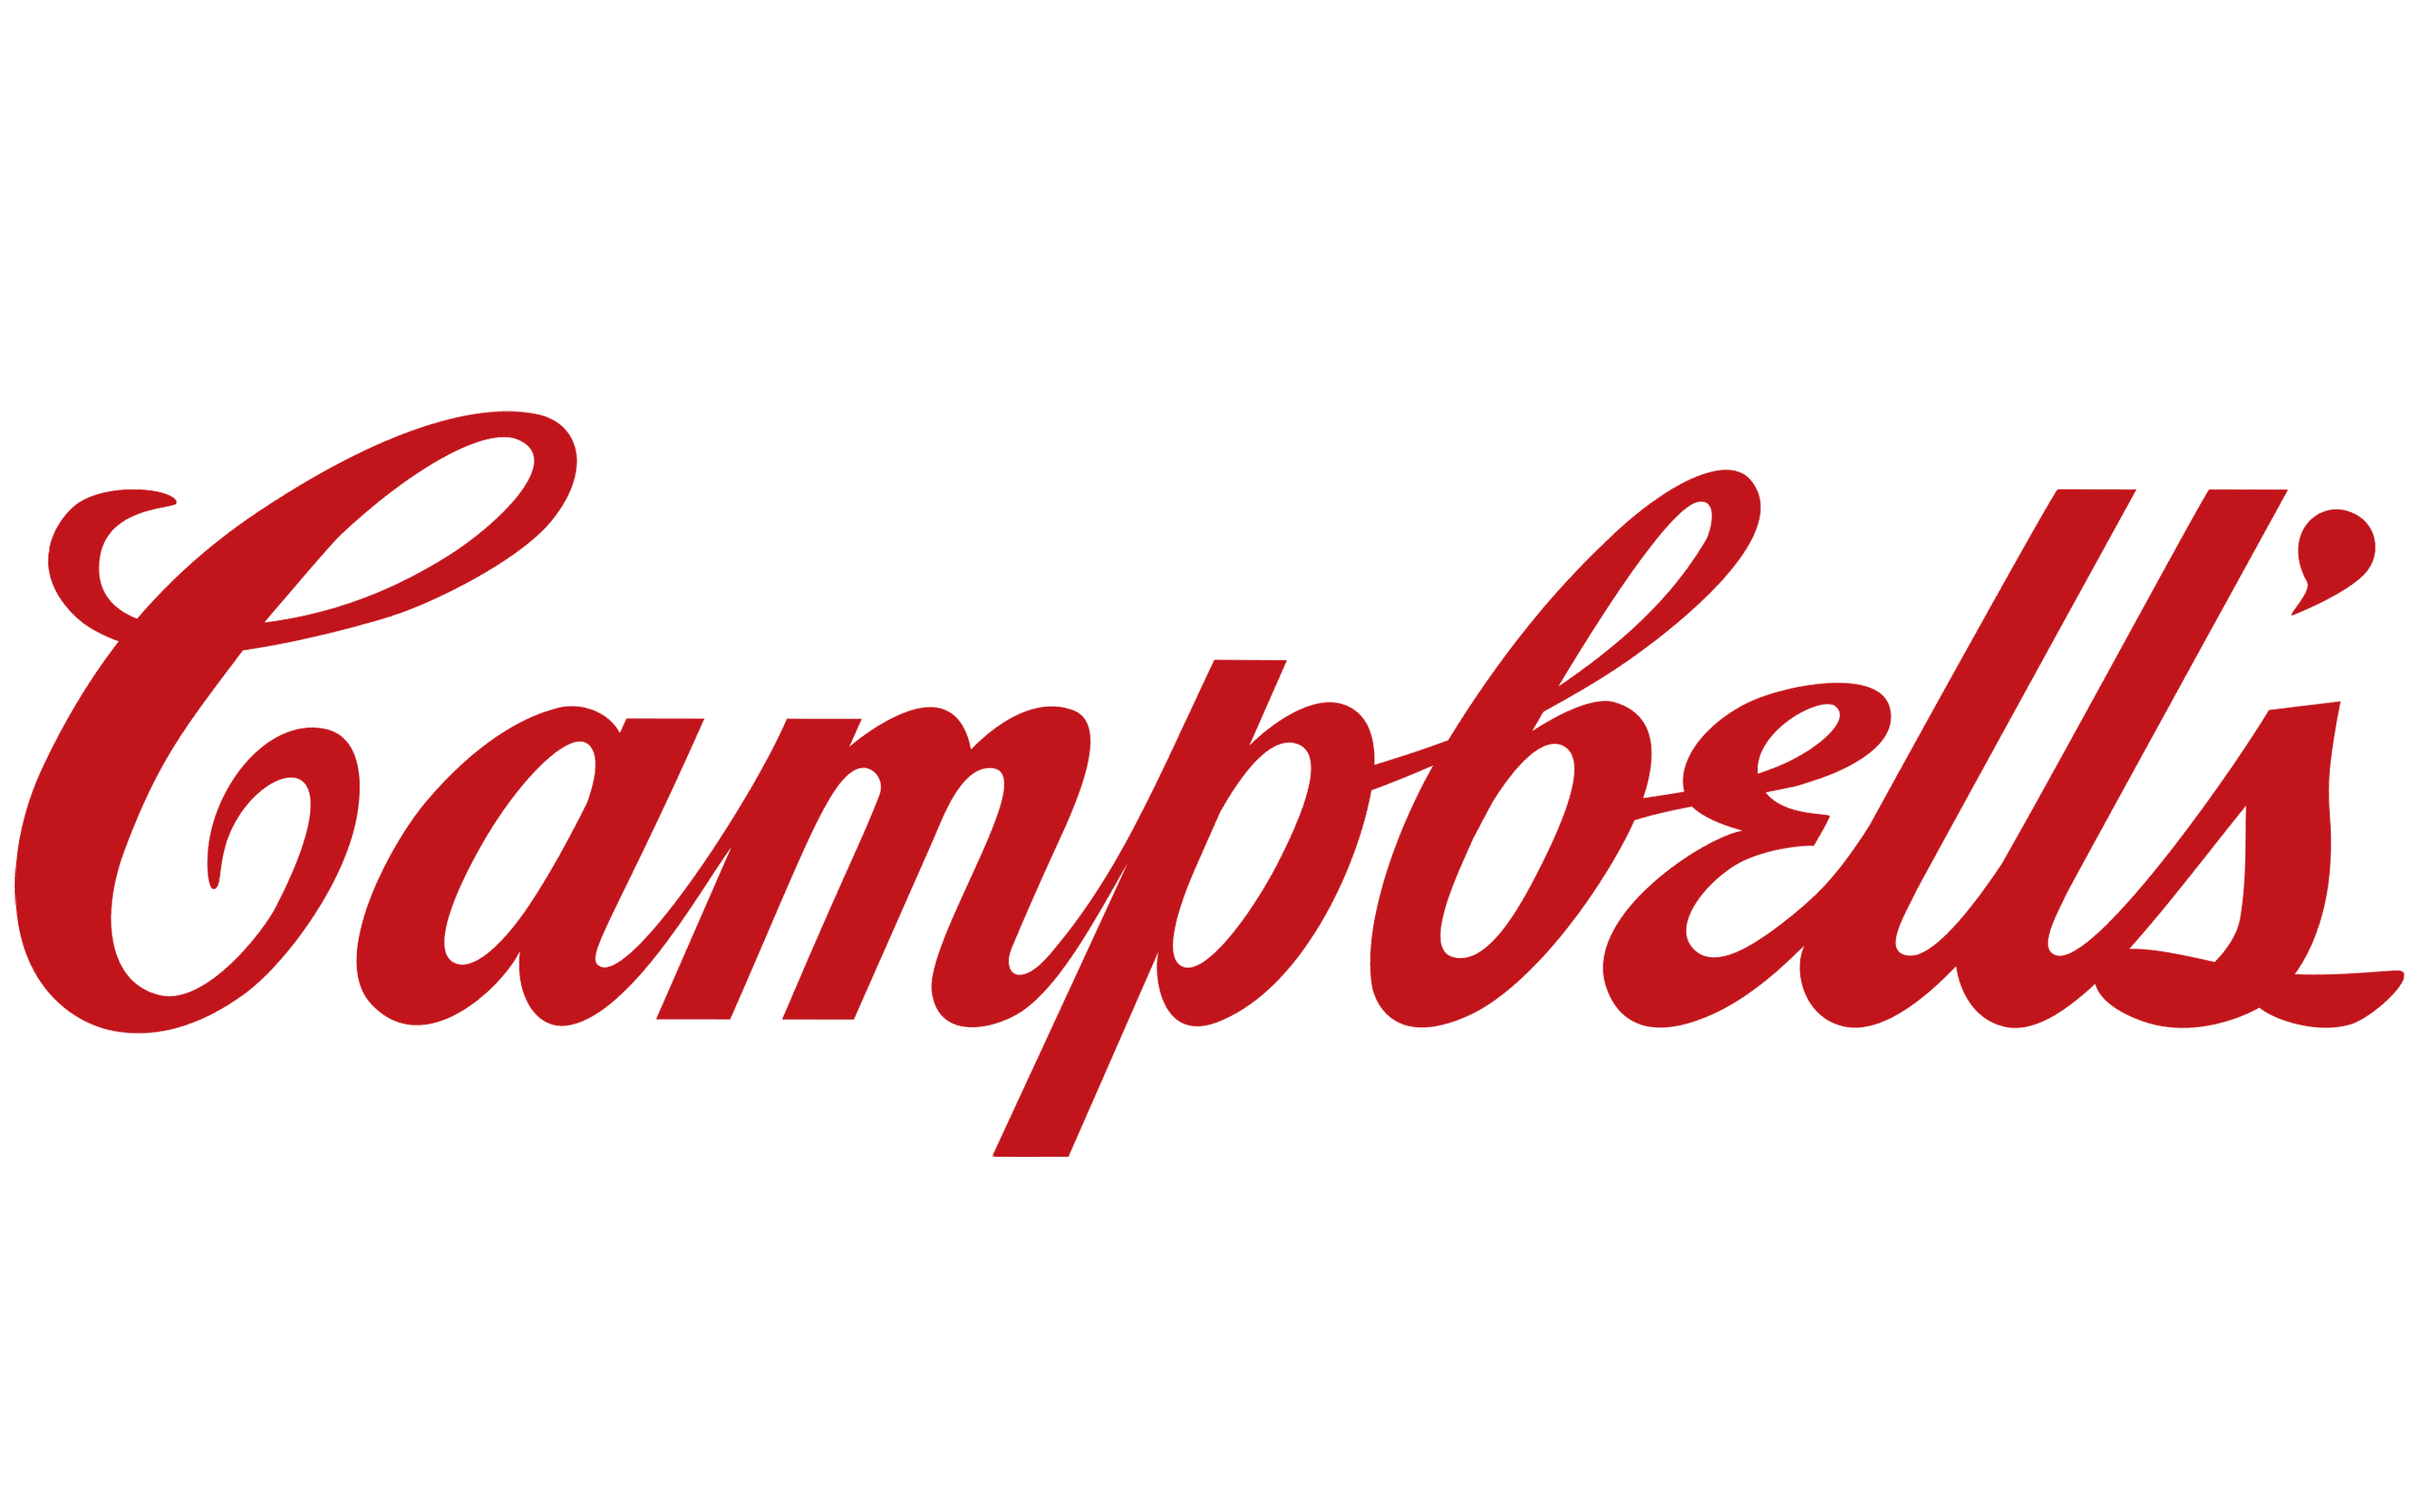 Campbell's